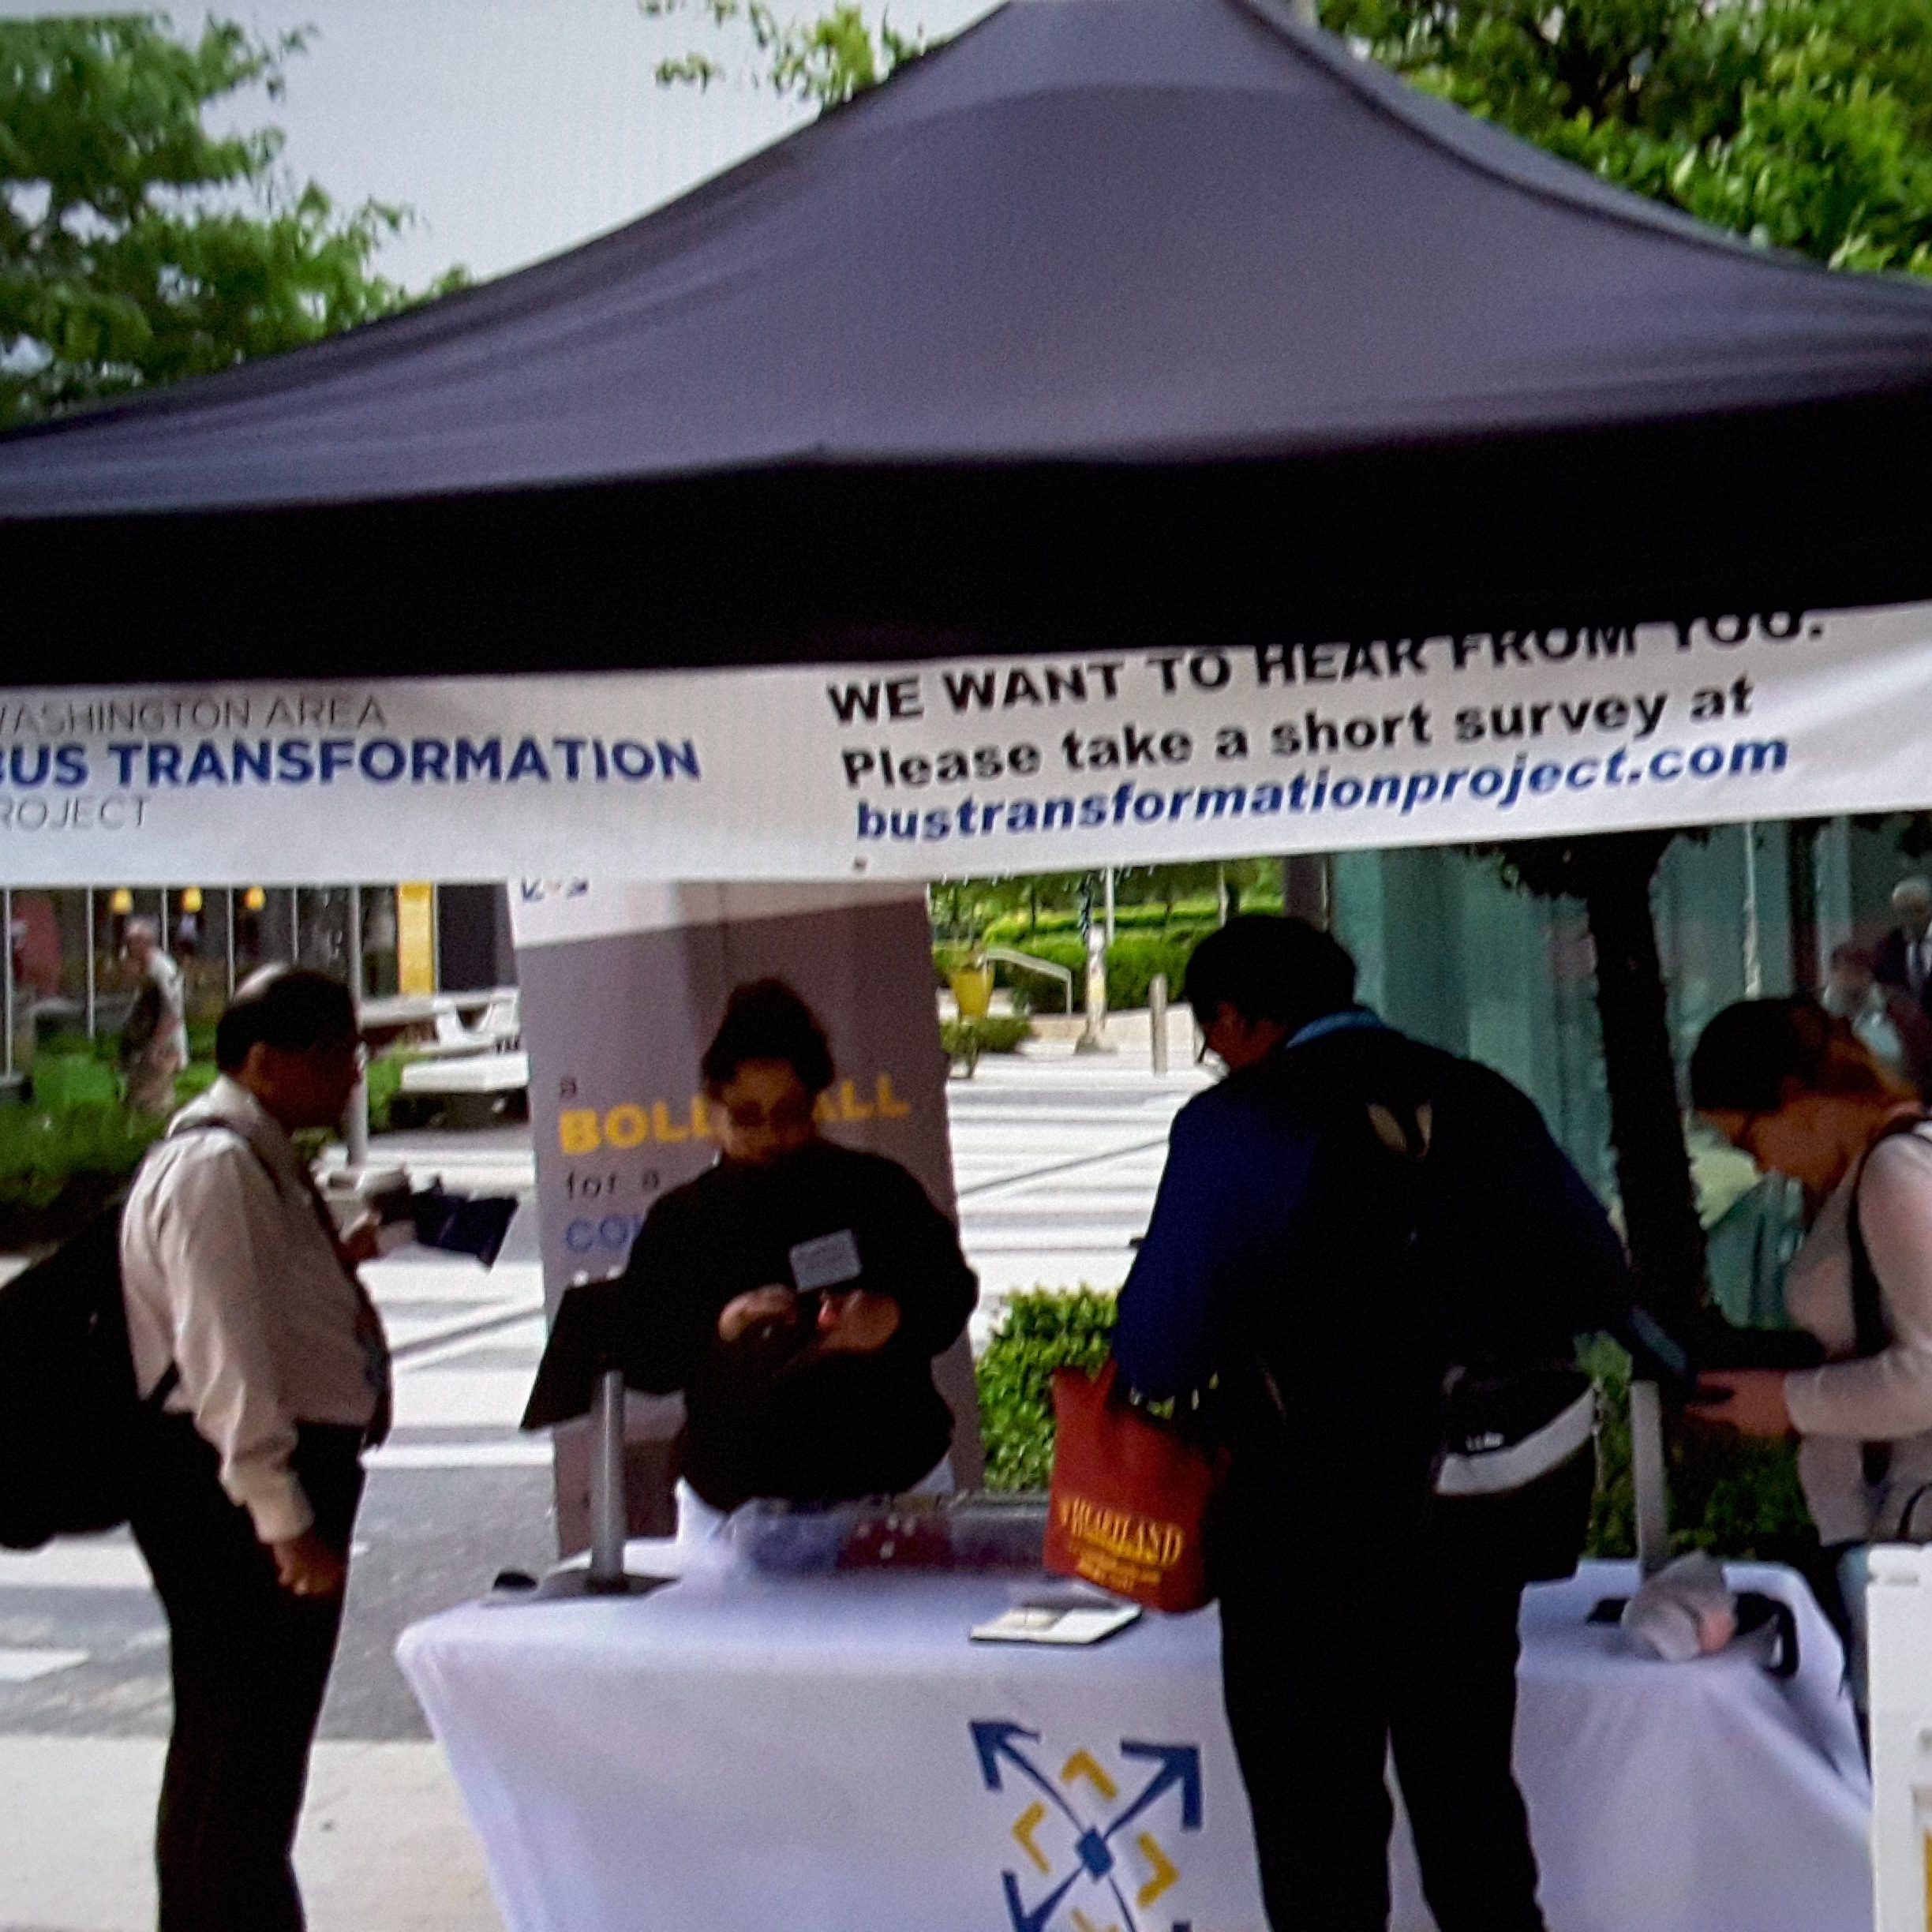 Event booth with people at the Wiehle-Reston East Station